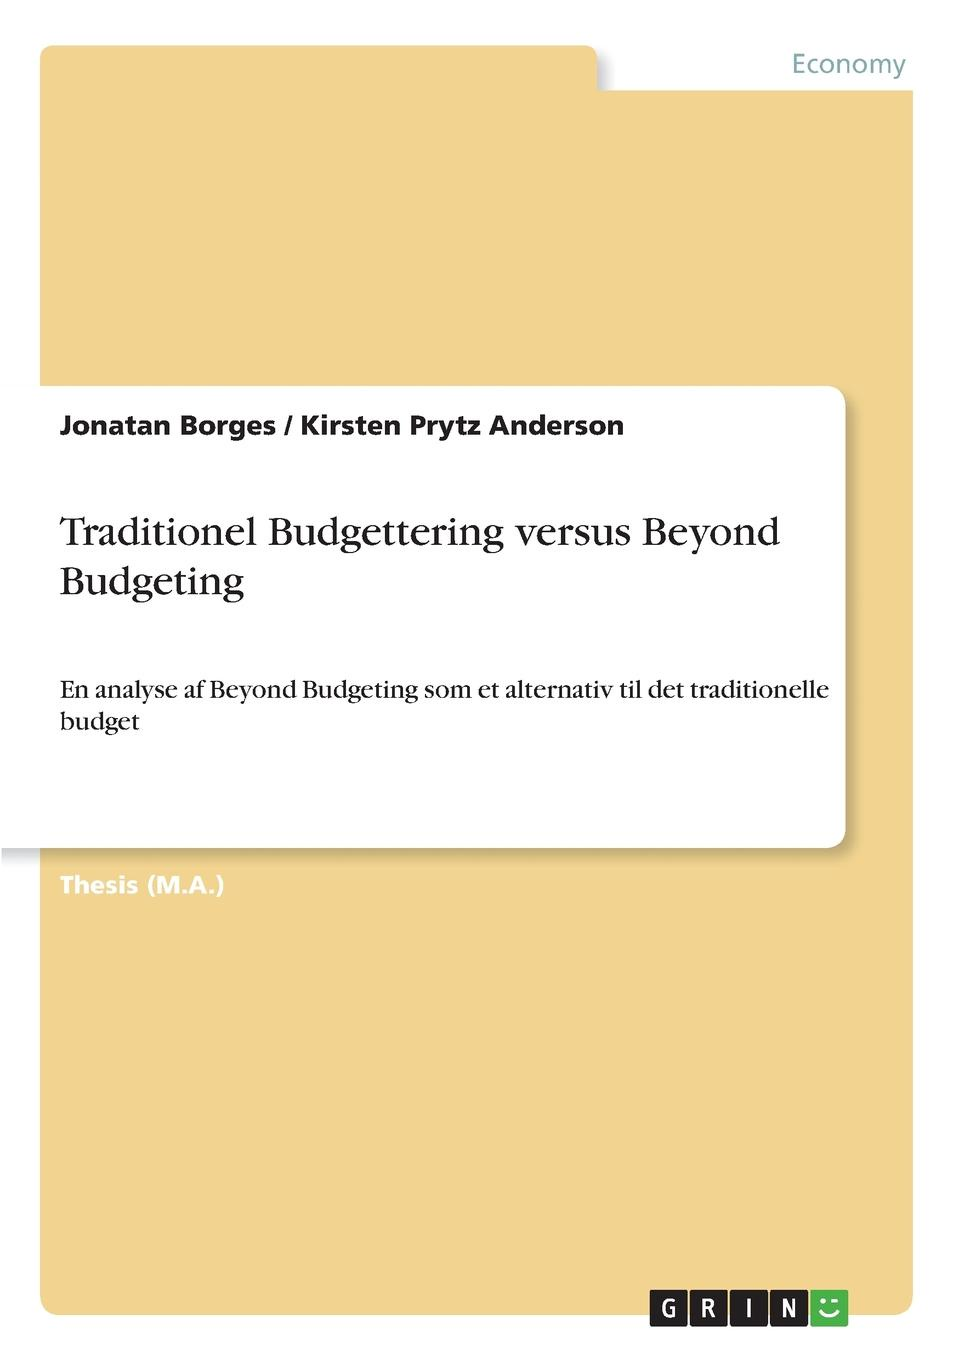 Jonatan Borges, Kirsten Prytz Anderson Traditionel Budgettering versus Beyond Budgeting kevin callahan r project management accounting budgeting tracking and reporting costs and profitability